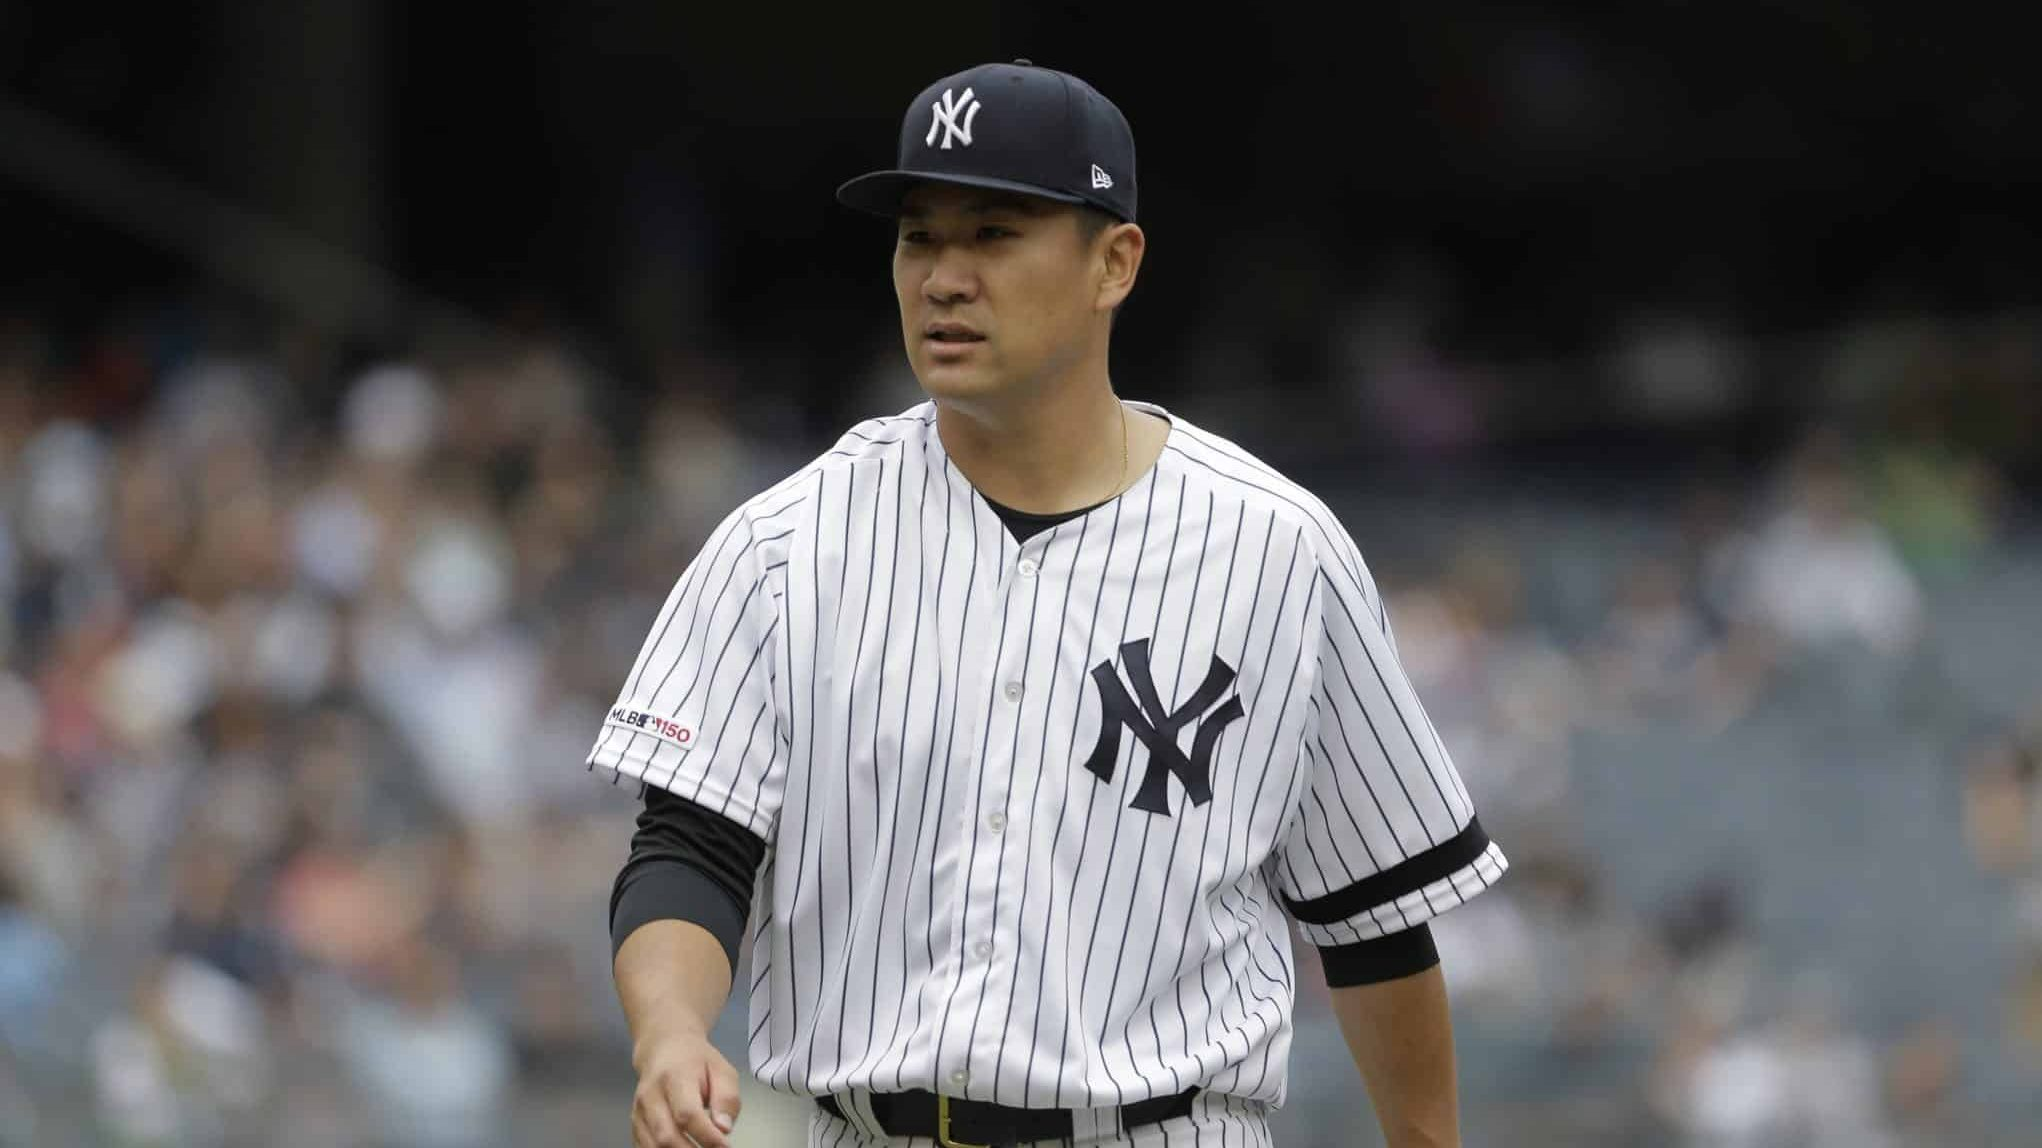 048acd562 Masahiro Tanaka struggles in New York Yankees 5-2 loss to White Sox  (Highlights)